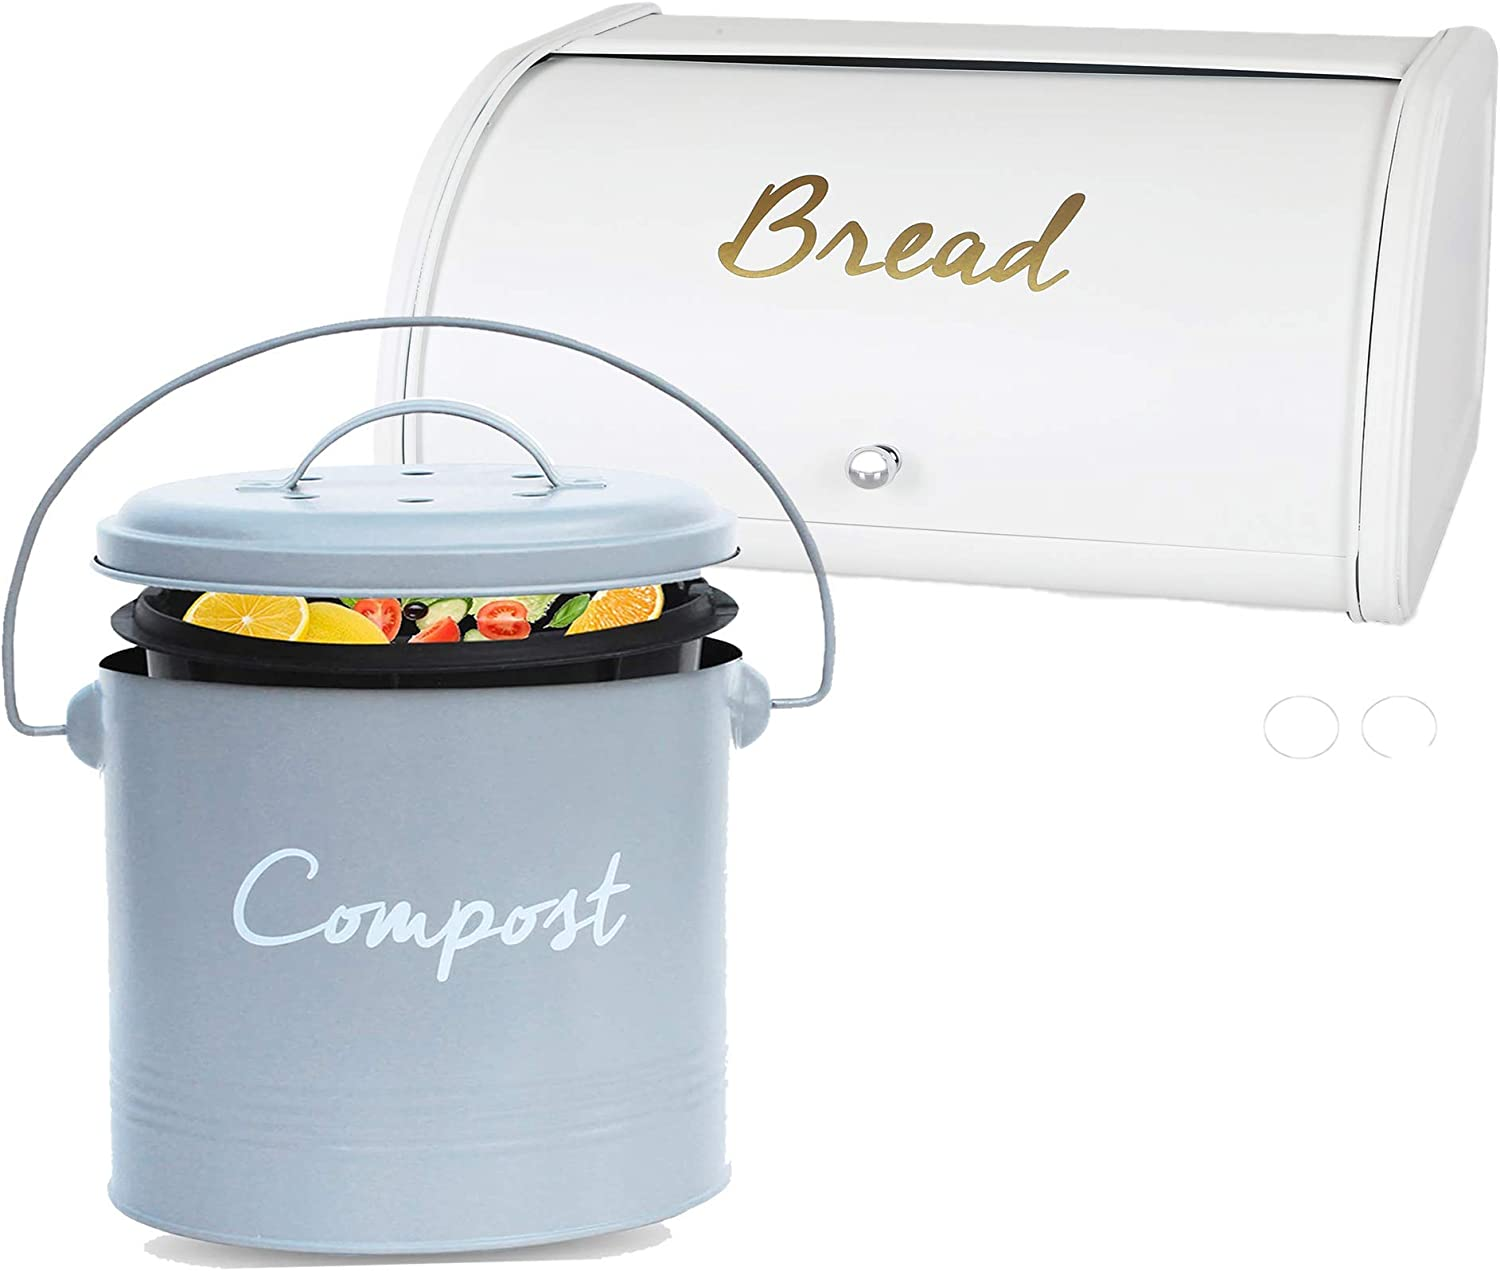 Compost BIN + Bread Box - Stainless Steel Compost Bin for Kitchen Counter - with Inner Compost Bucket for Kitchen Composter for Zero Waste Recycling + Farmhouse Bread Boxes for Homemade Bread